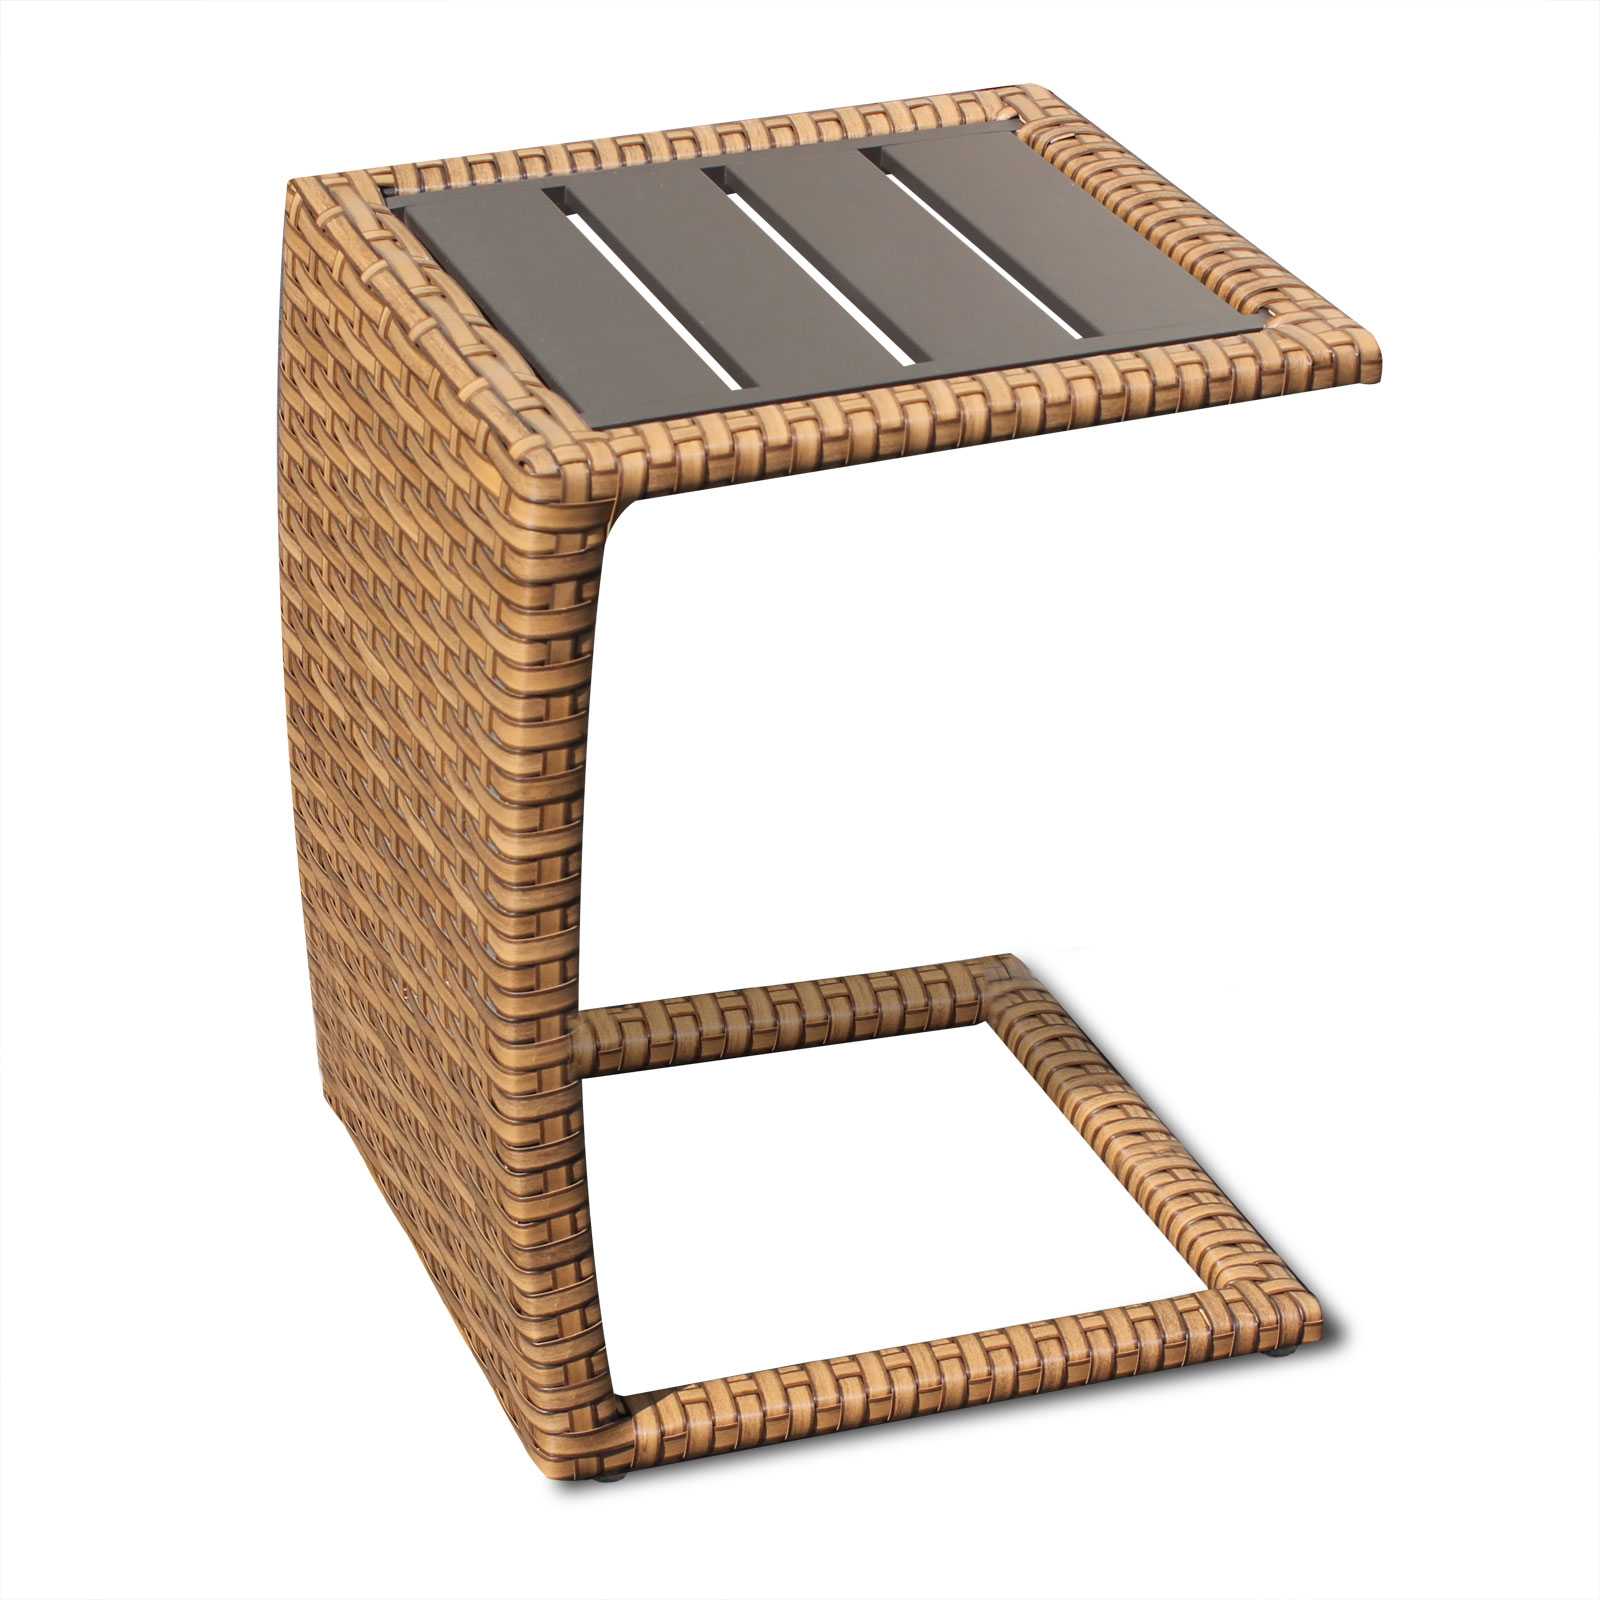 brown wicker side table outdoor patio tuscan design furnishings night lamp pottery barn furniture large round dining glass top bar sets clearance stained standing nesting sofa